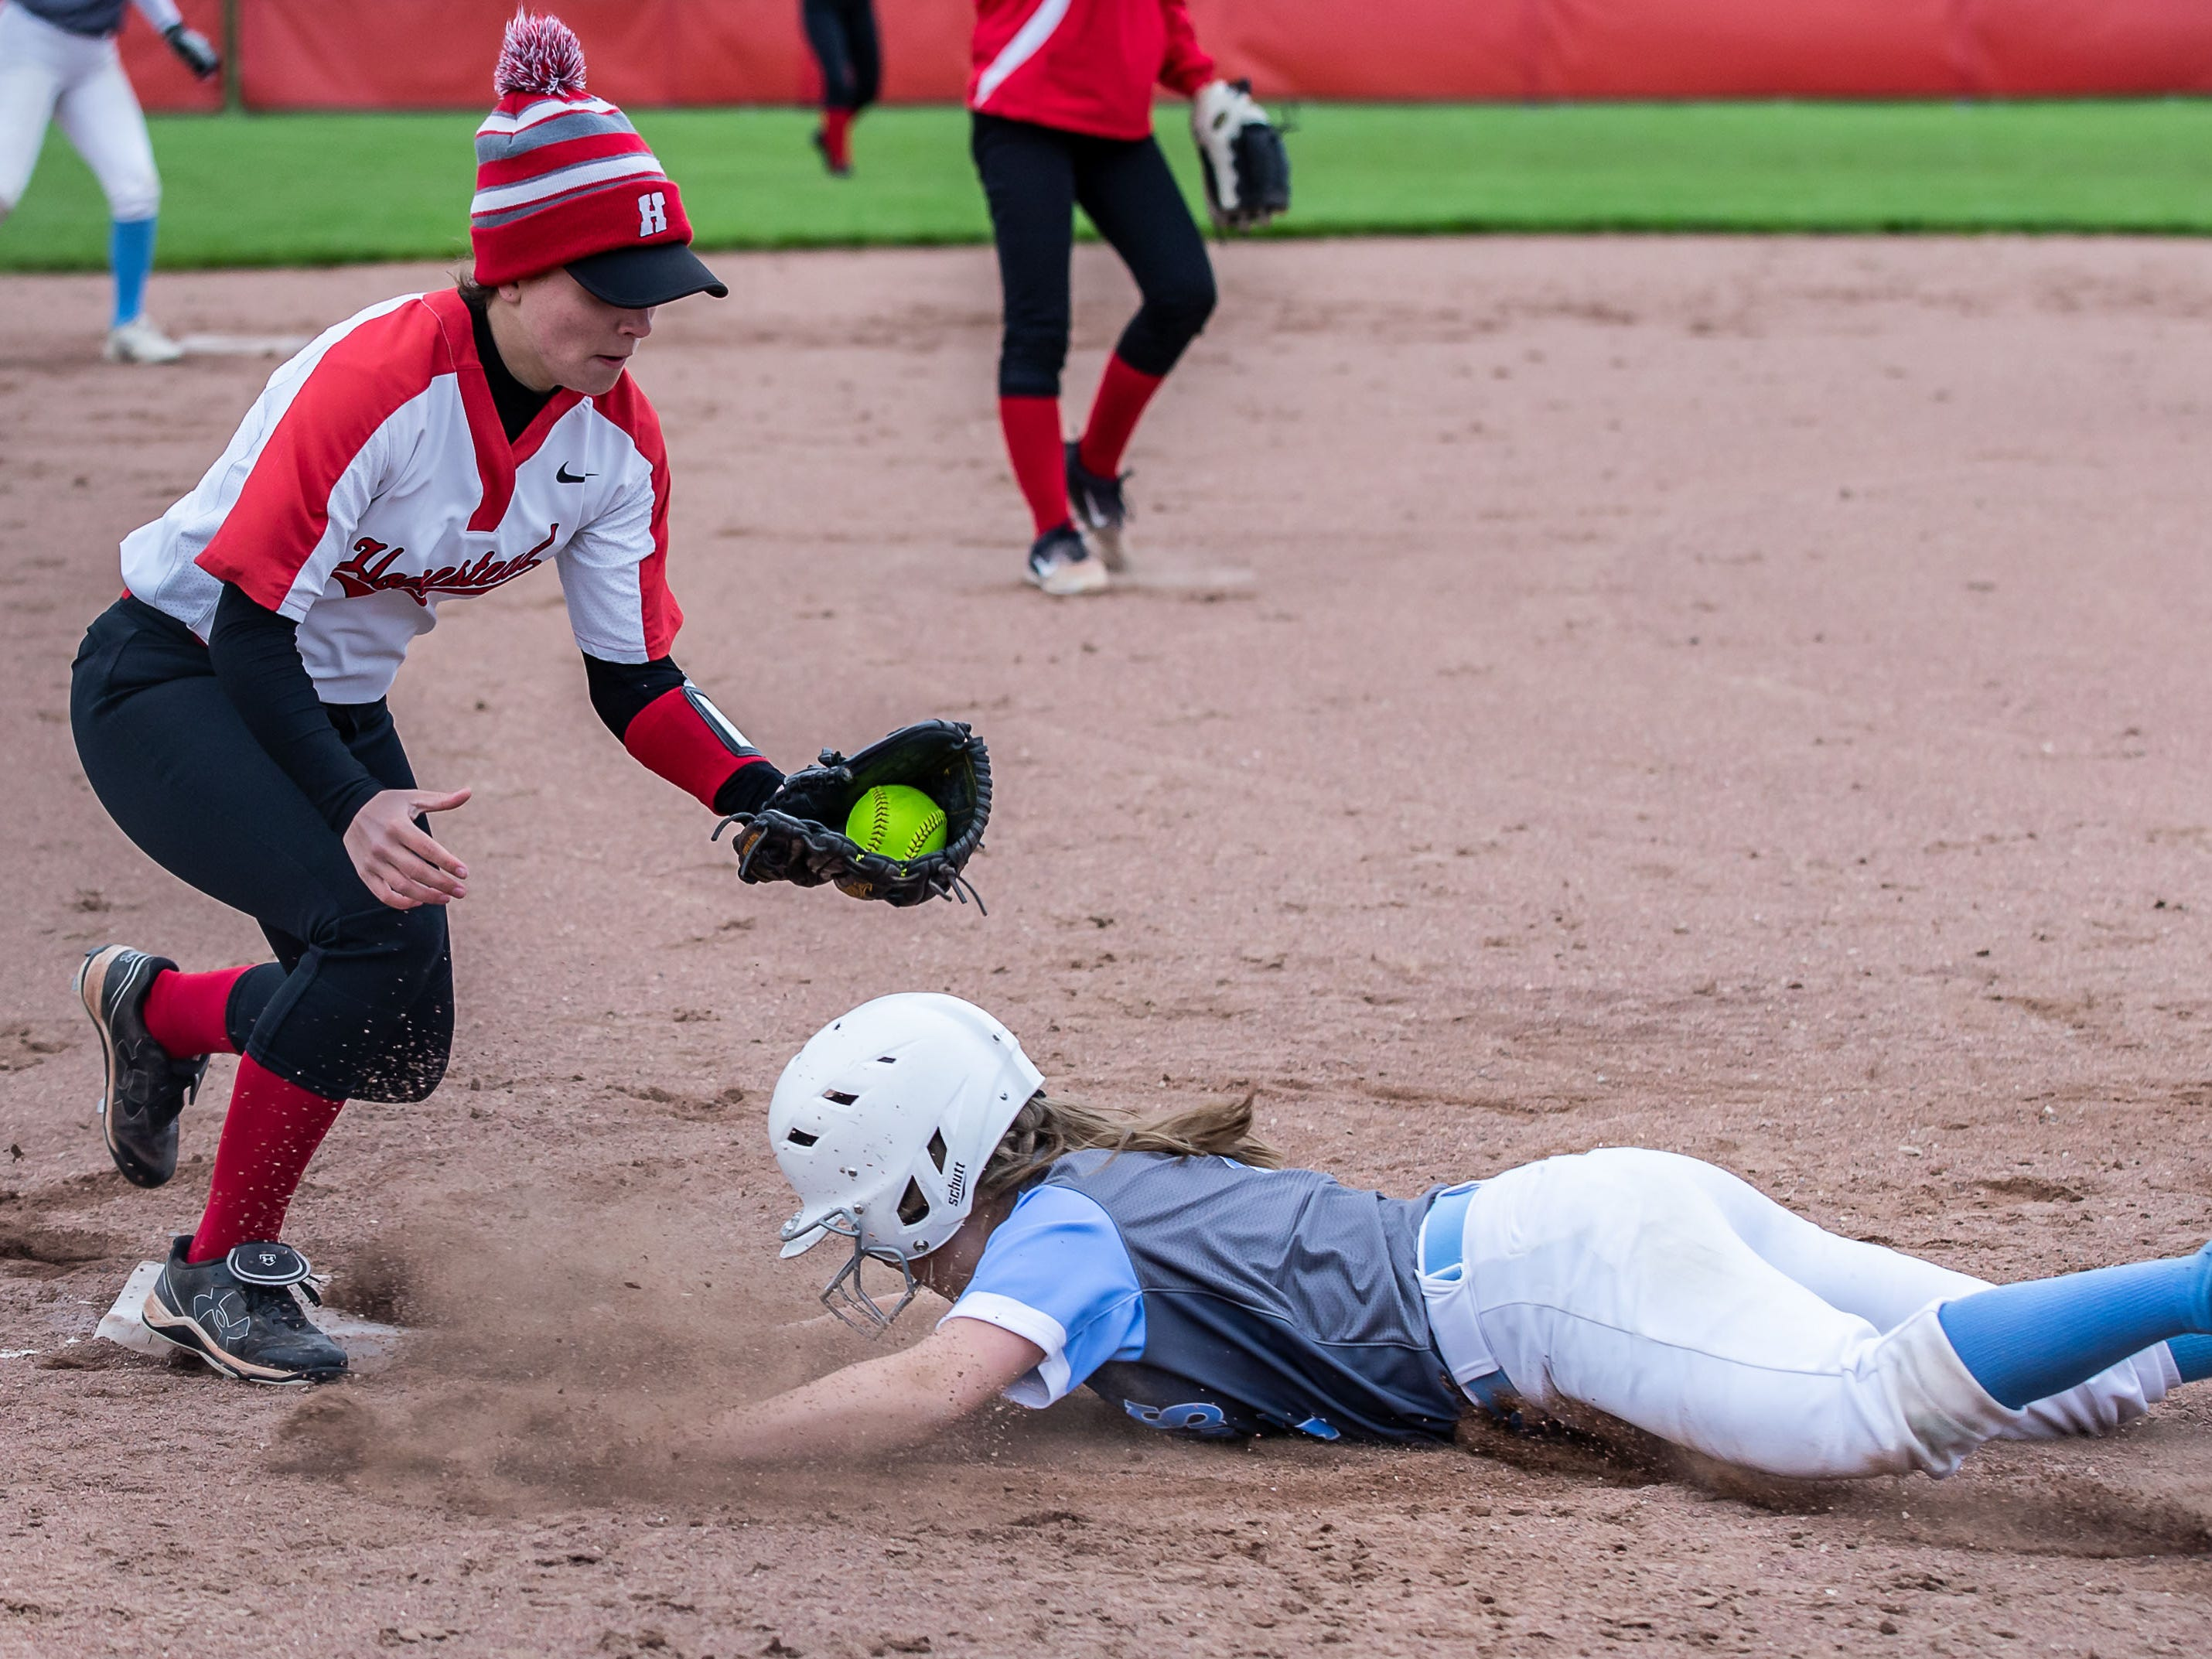 Brookfield Central's Ashley Dobrzynski (1) narrowly gets back to third base as Homestead's Cat Seiberlich (18) tries for the tag during the regional game at Homestead on Tuesday, May 21, 2019.